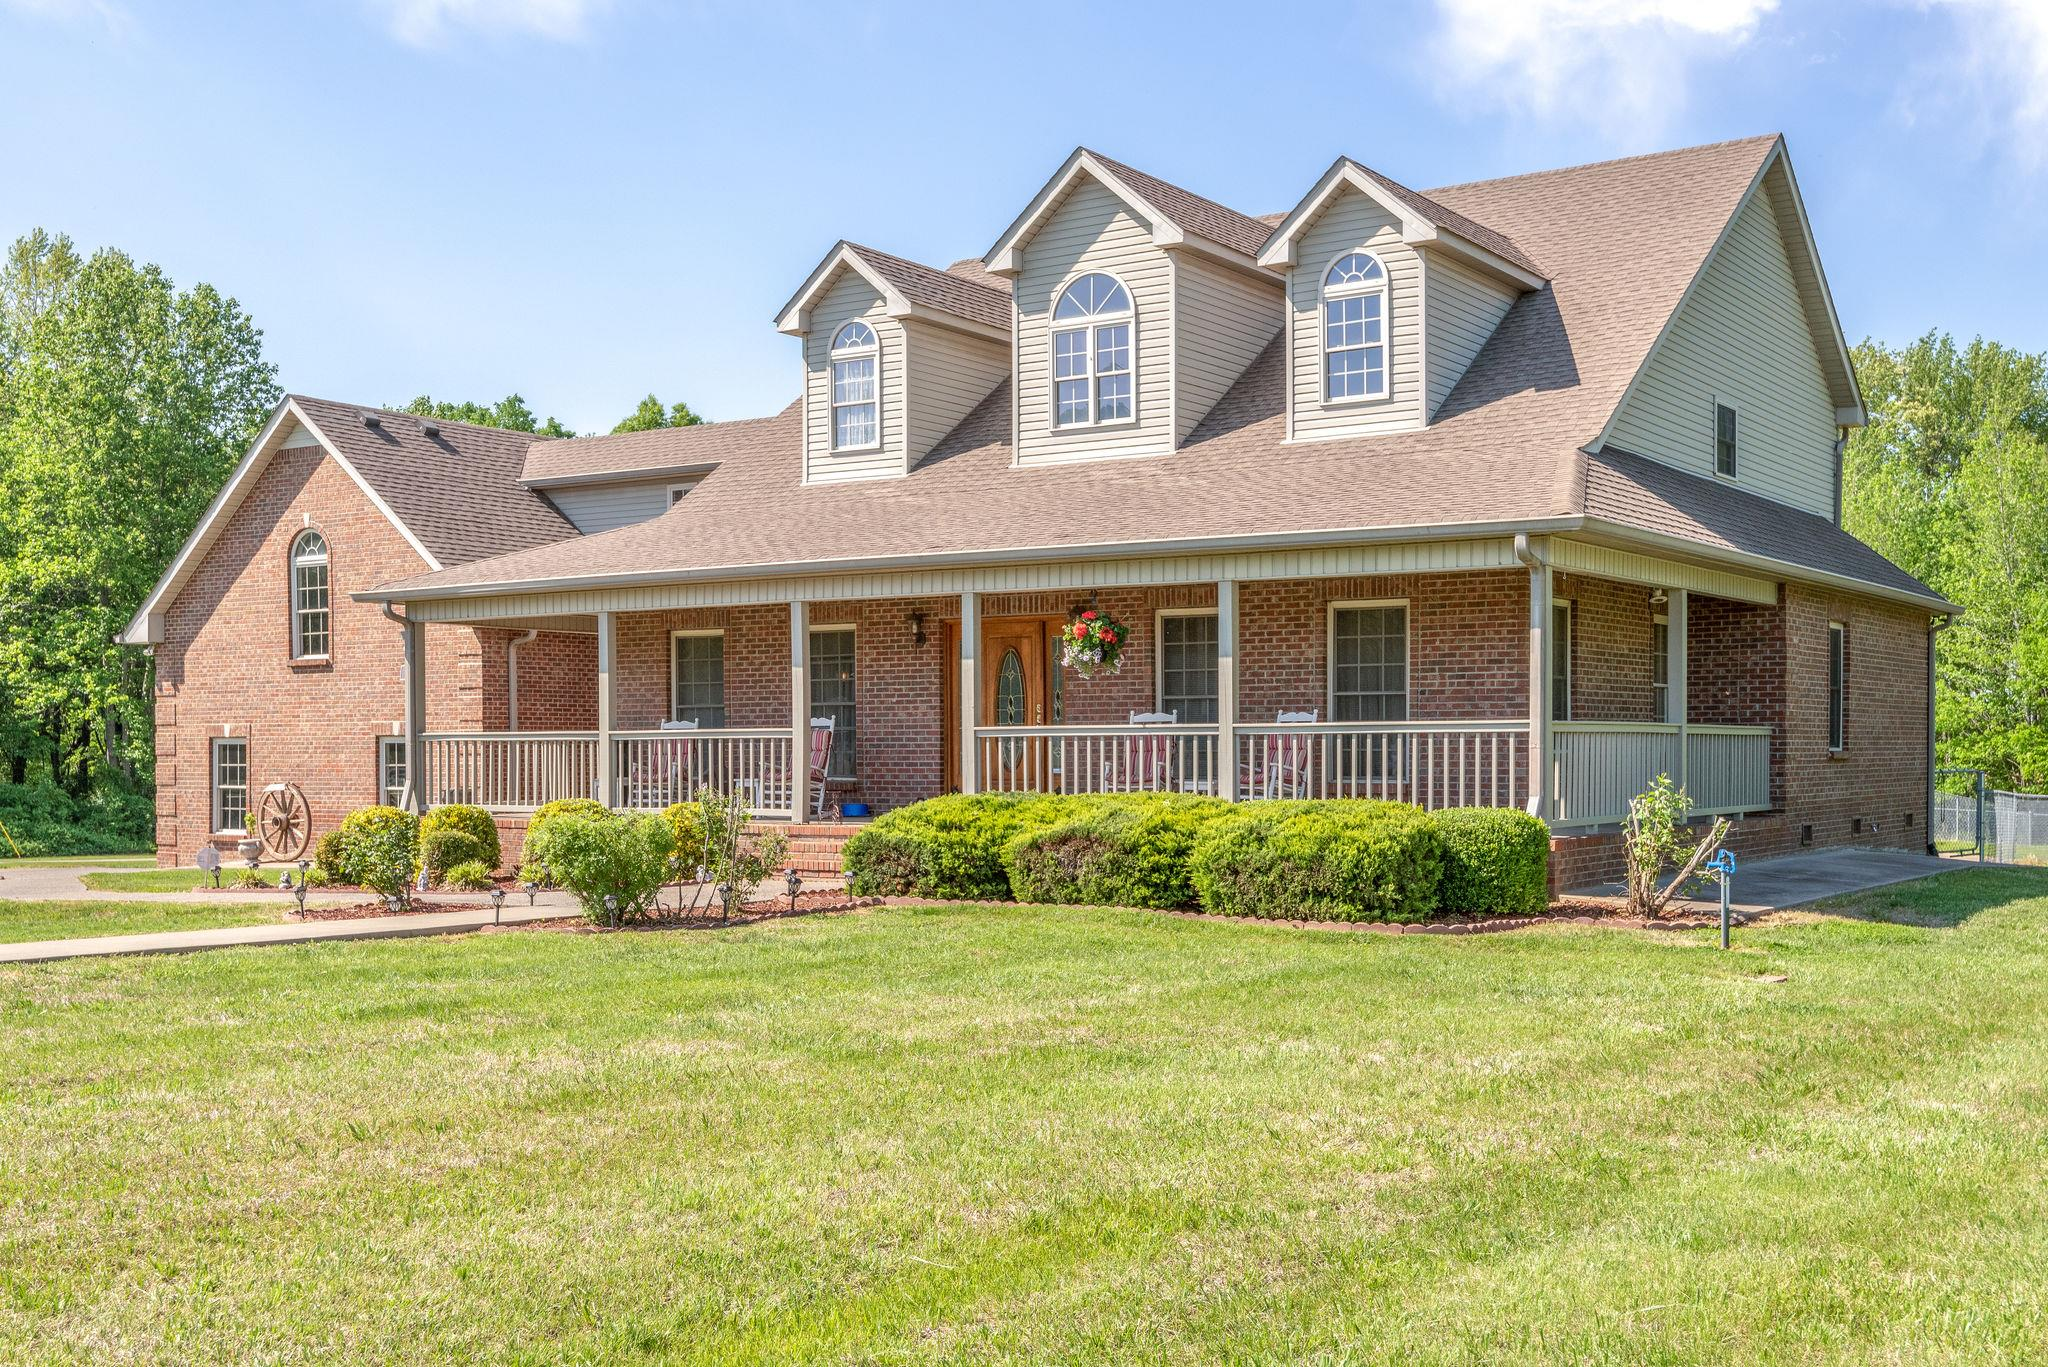 2318 Mud Cat Rd, Adams, TN 37010 - Adams, TN real estate listing